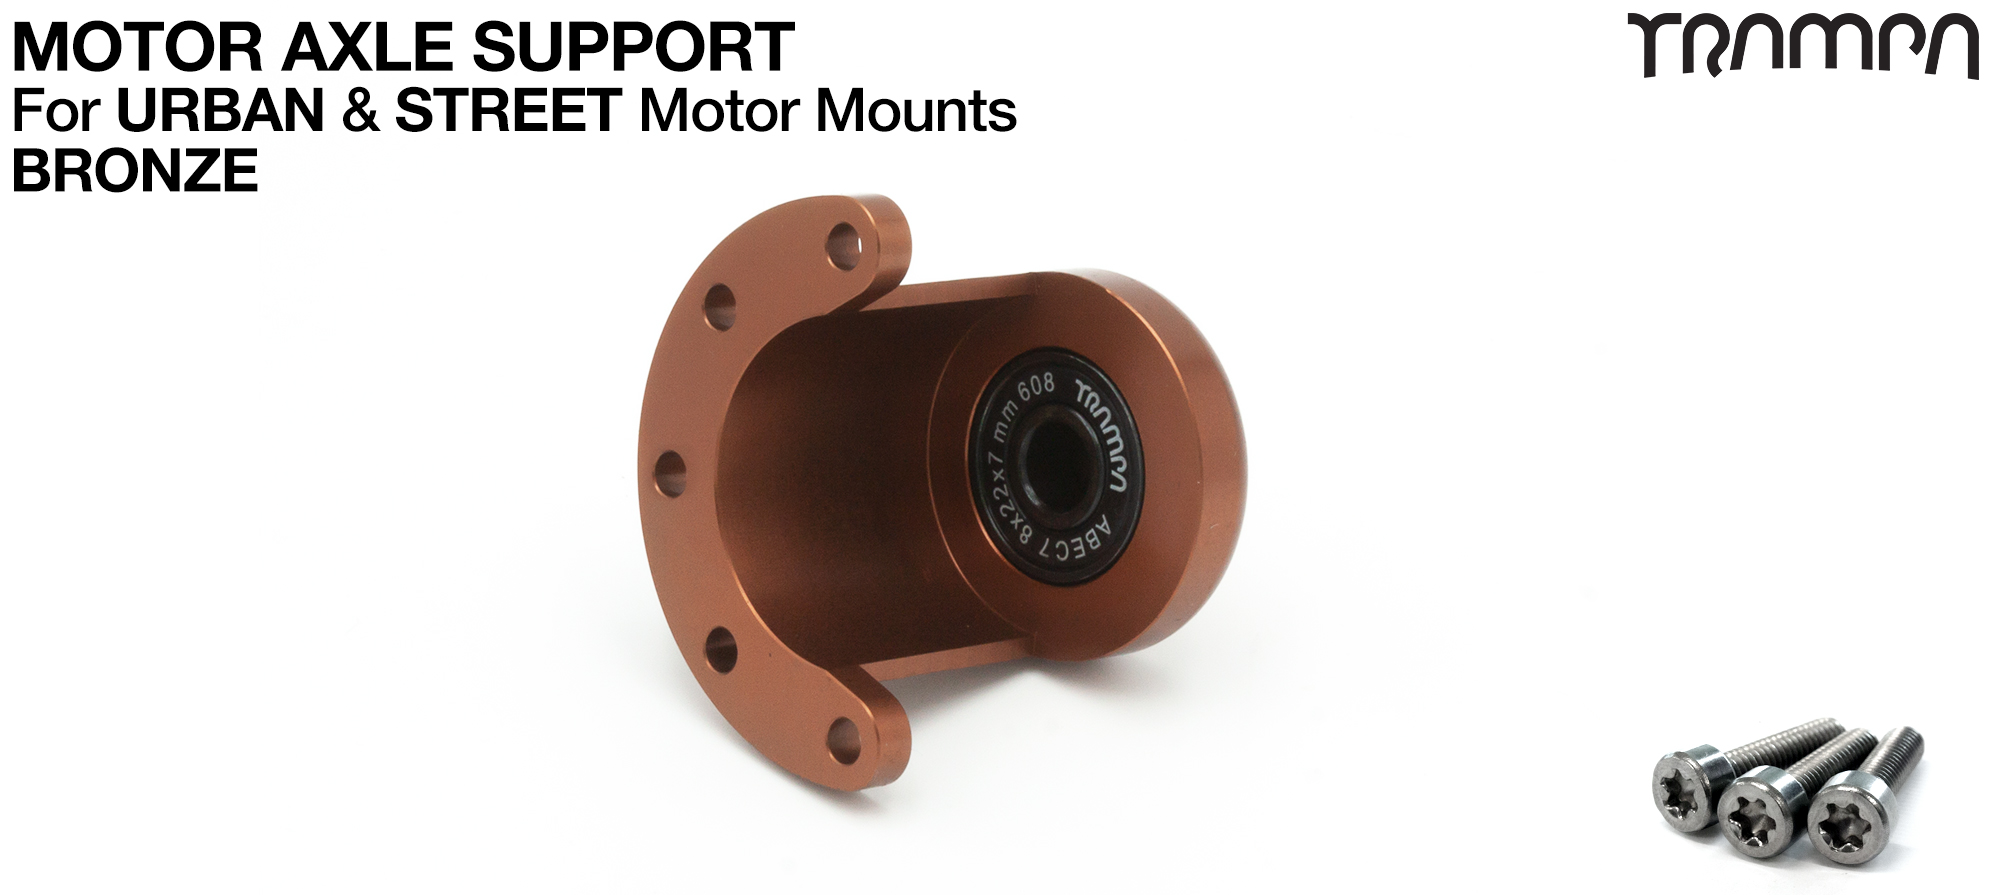 Motor Axle Support Housing with TRAMPA R608 8x22x7mm Bearing, C-Clip & Stainless Steel fixing Bolts for ORRSOM Longboard Motor Mounts  - BRONZE